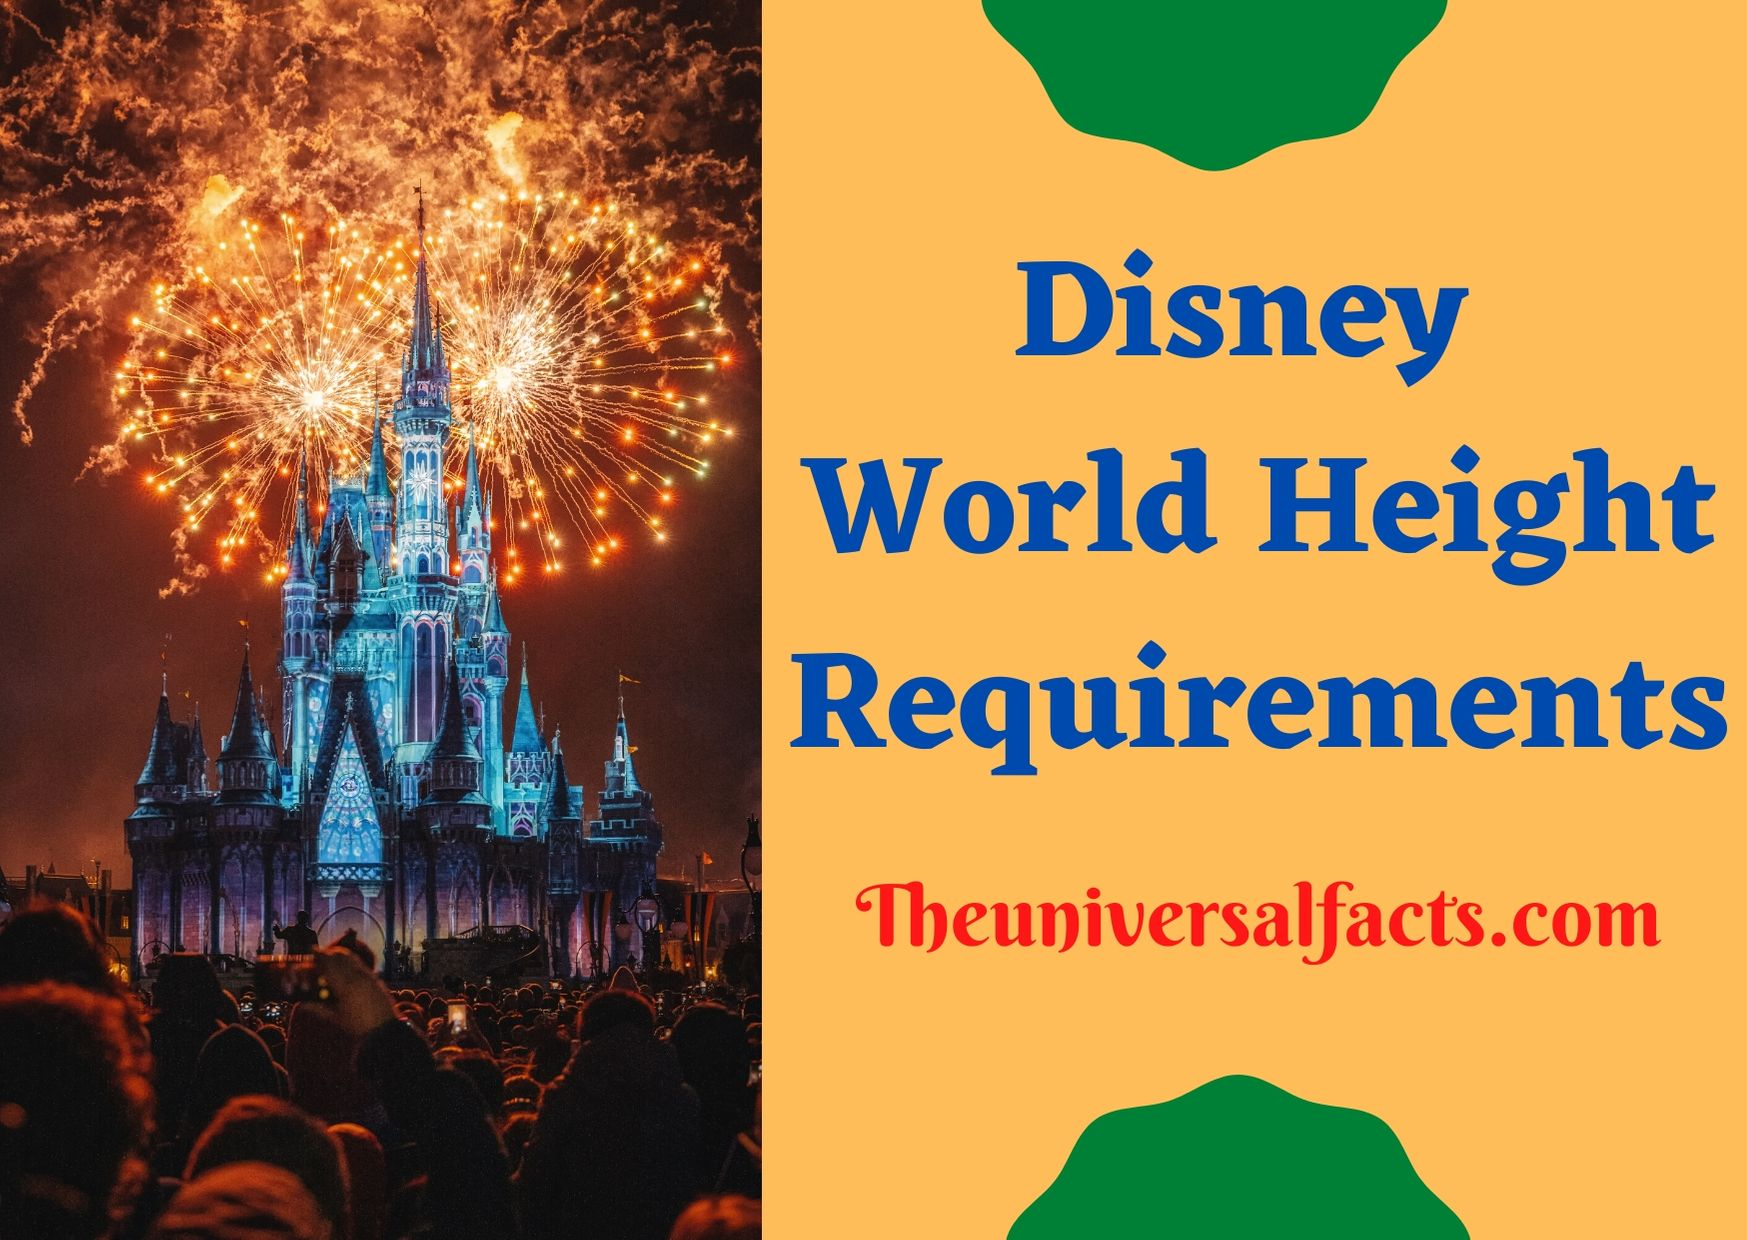 Disney World Height Requirements